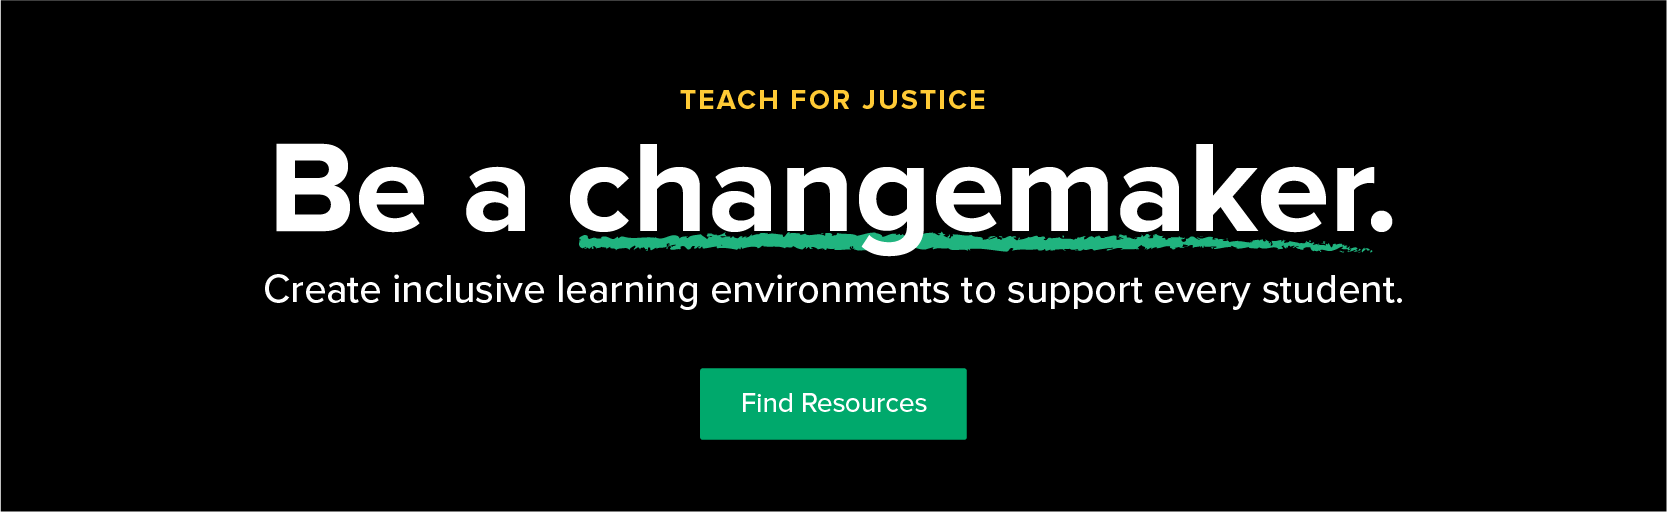 TpT Teach for Justice banner